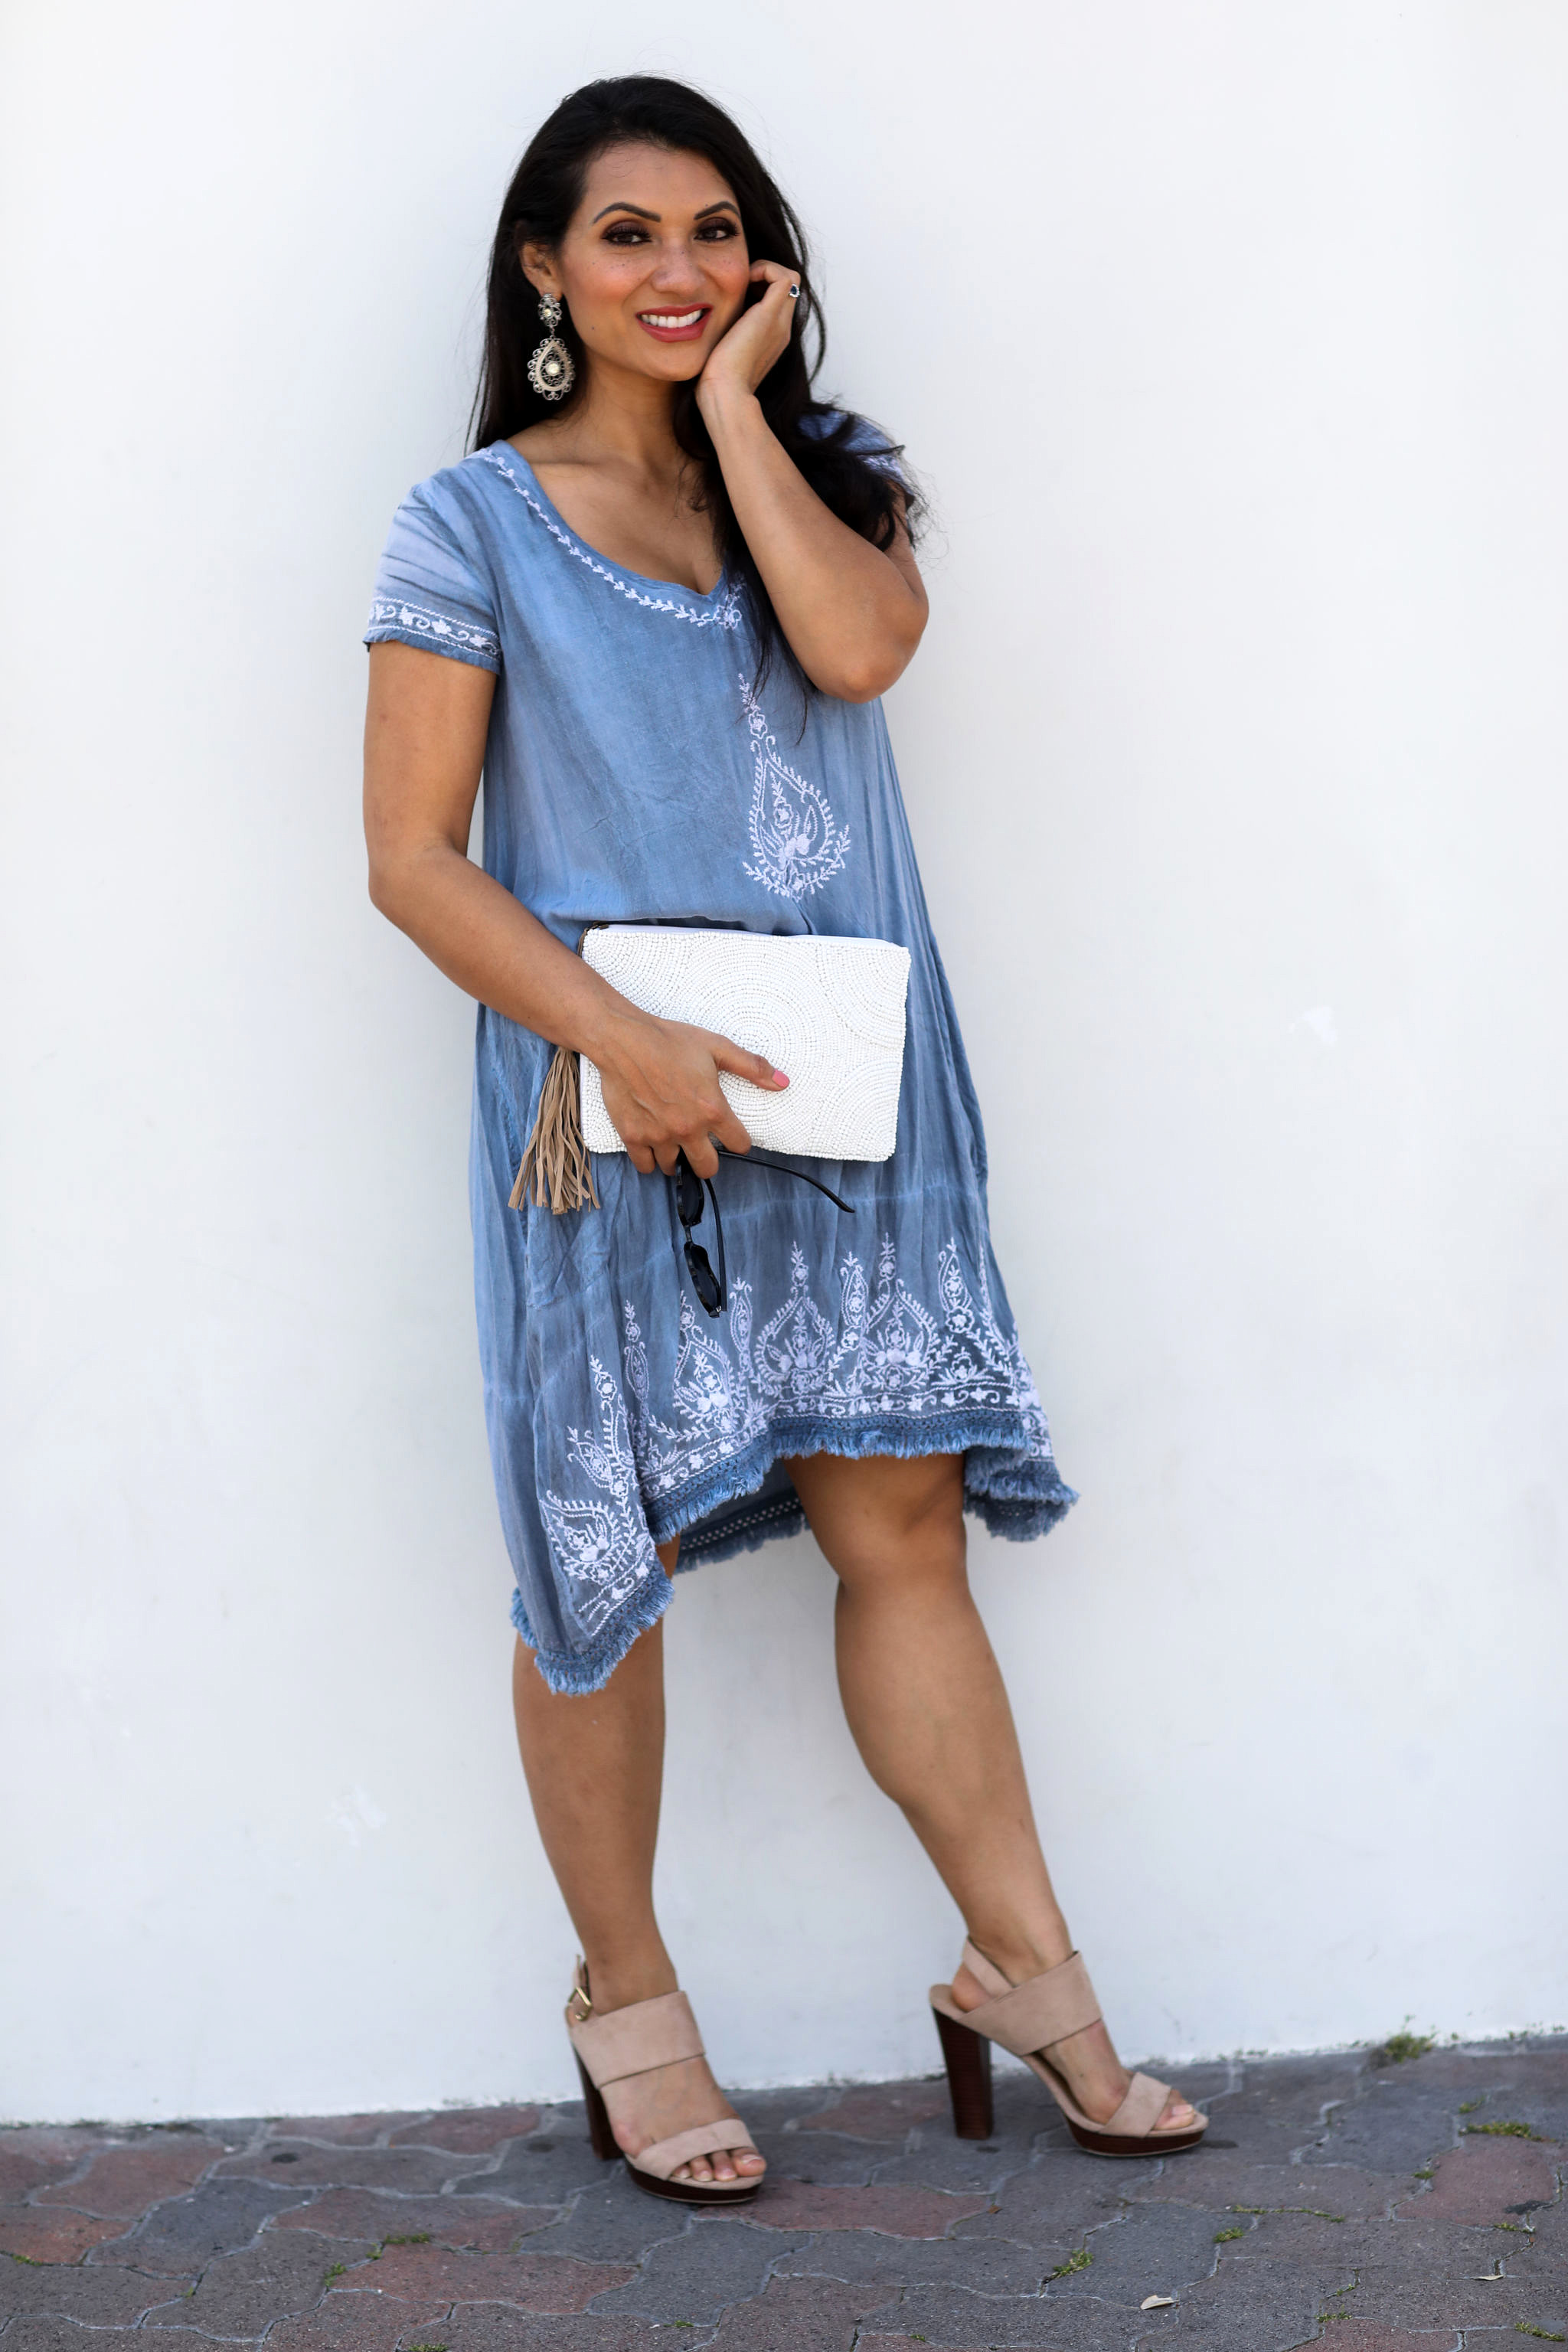 Looking for the perfect sunny day dress? Orange County Blogger Debbie Savage is sharing her favorite sunny day dress that everyone will love. See it here!